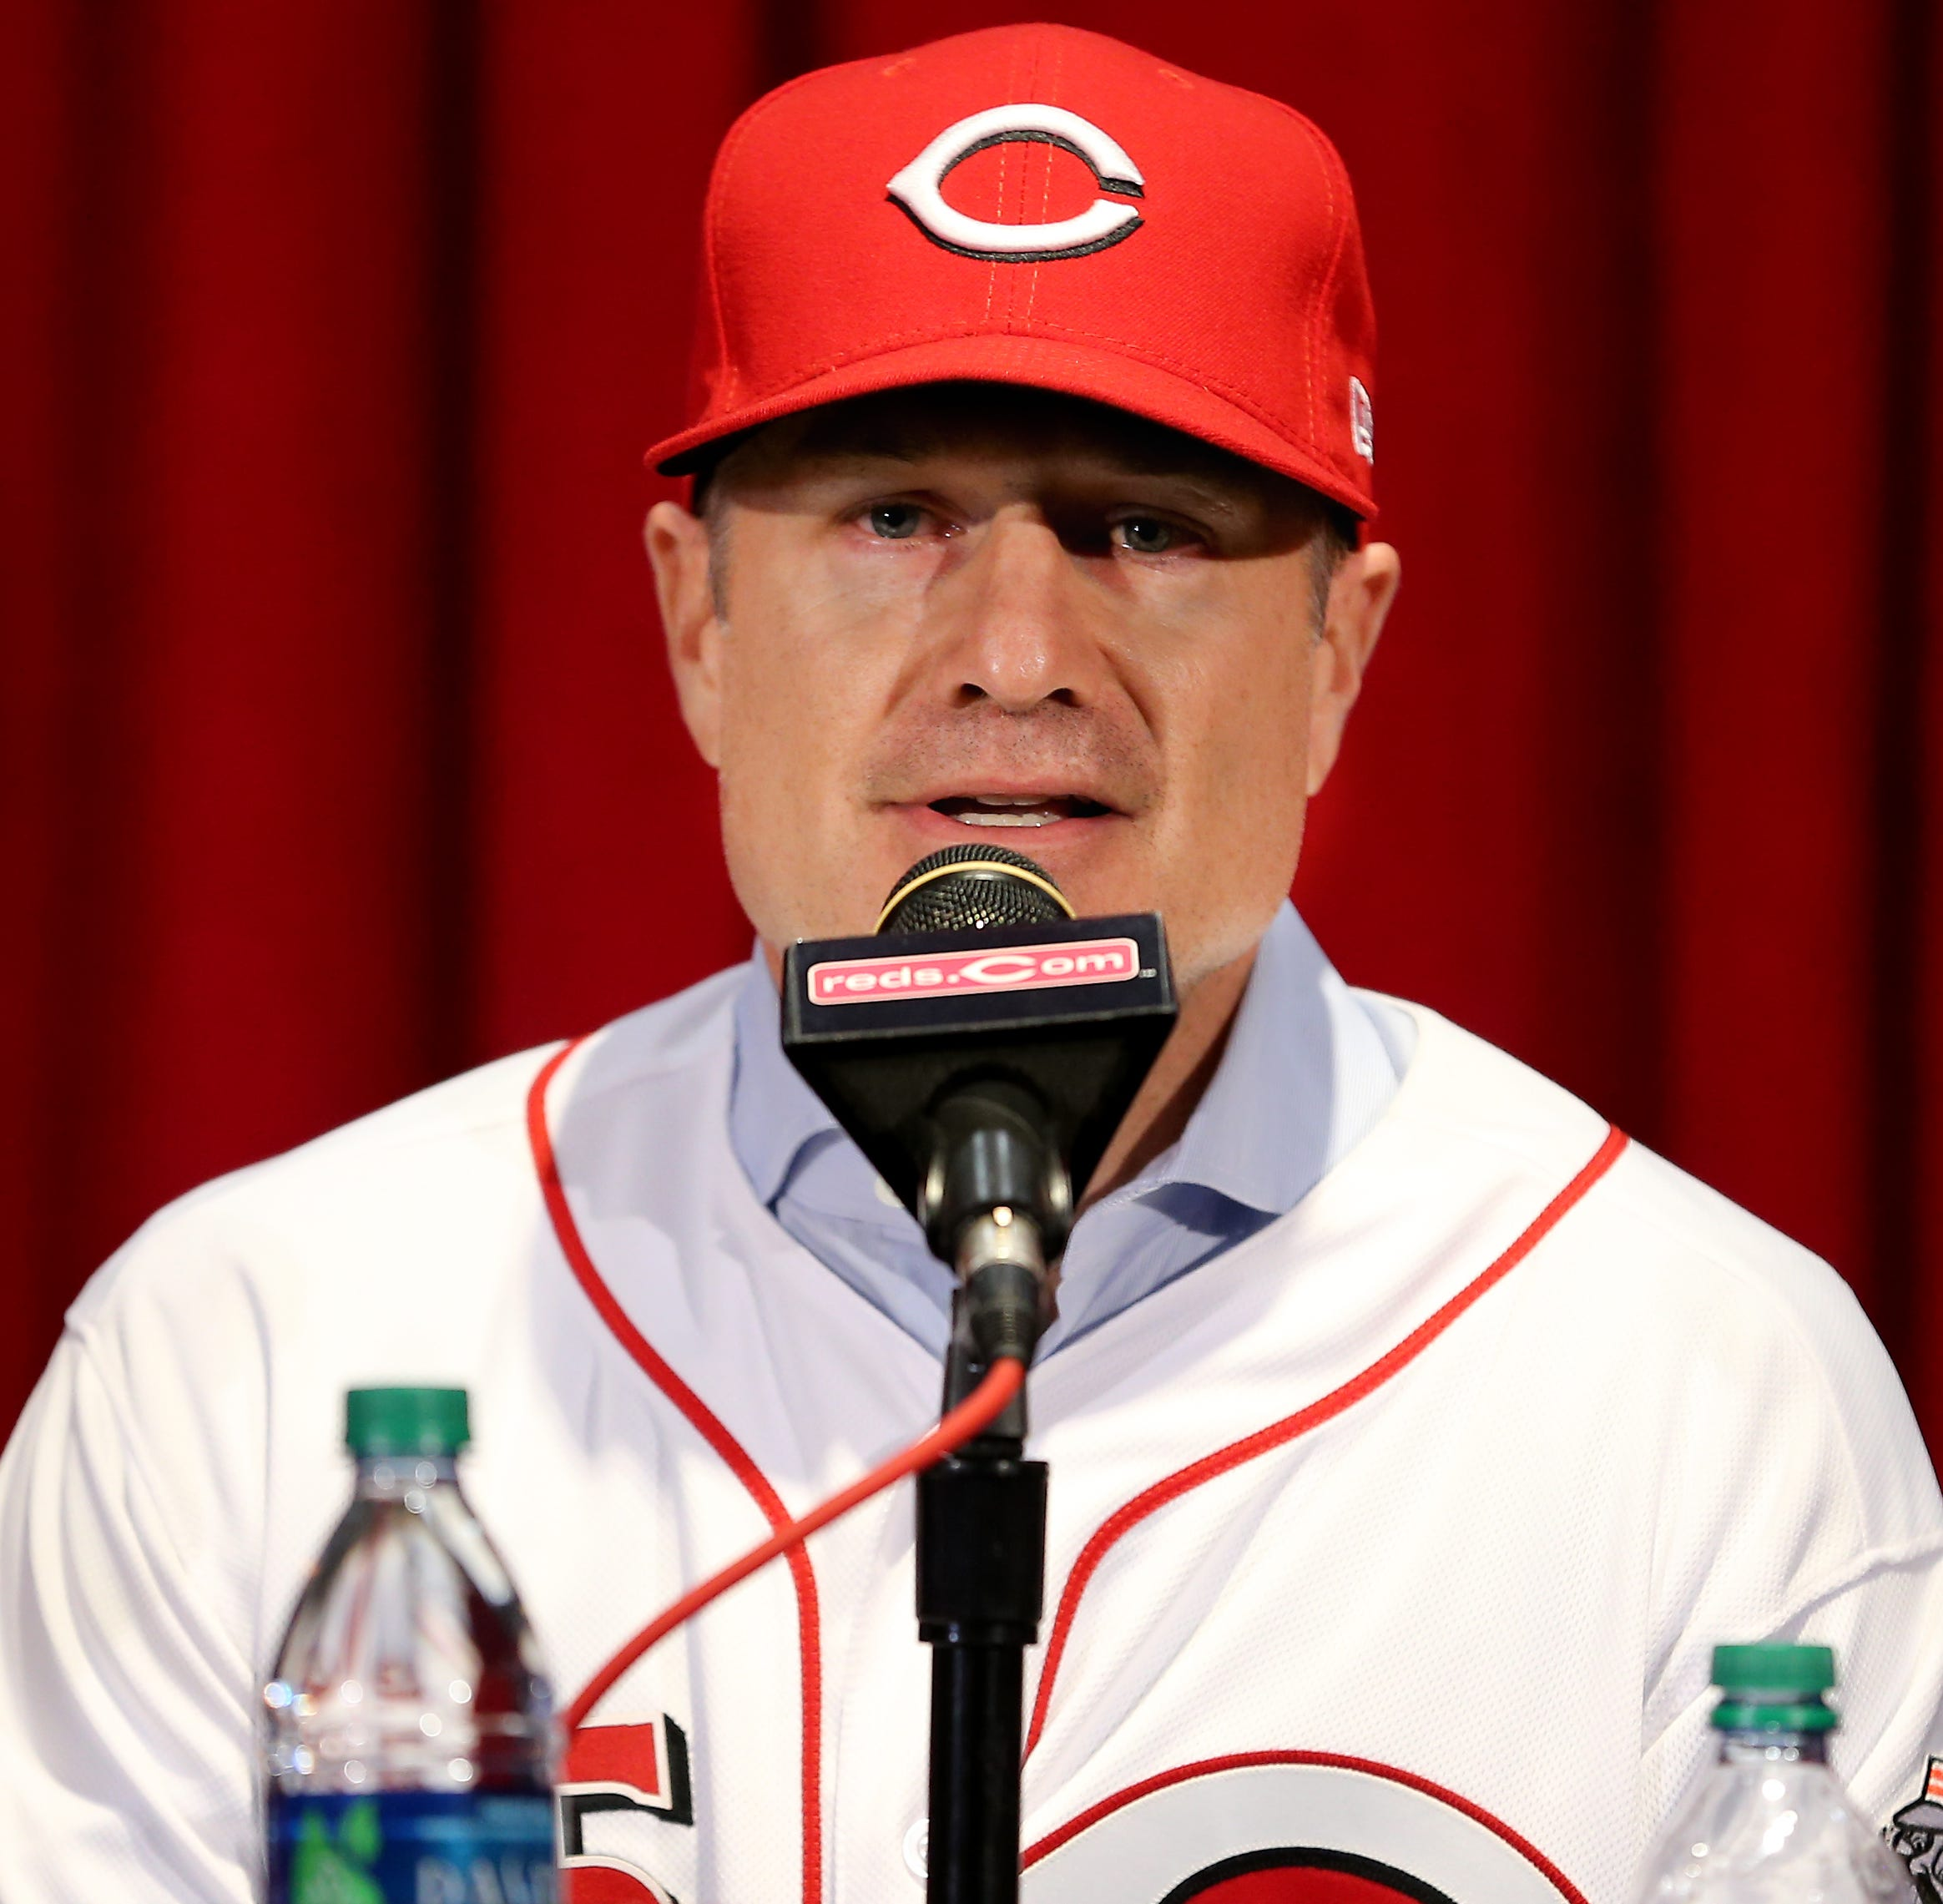 Cincinnati Reds Beat Podcast: David Bell talks analytics, emotions on becoming manager